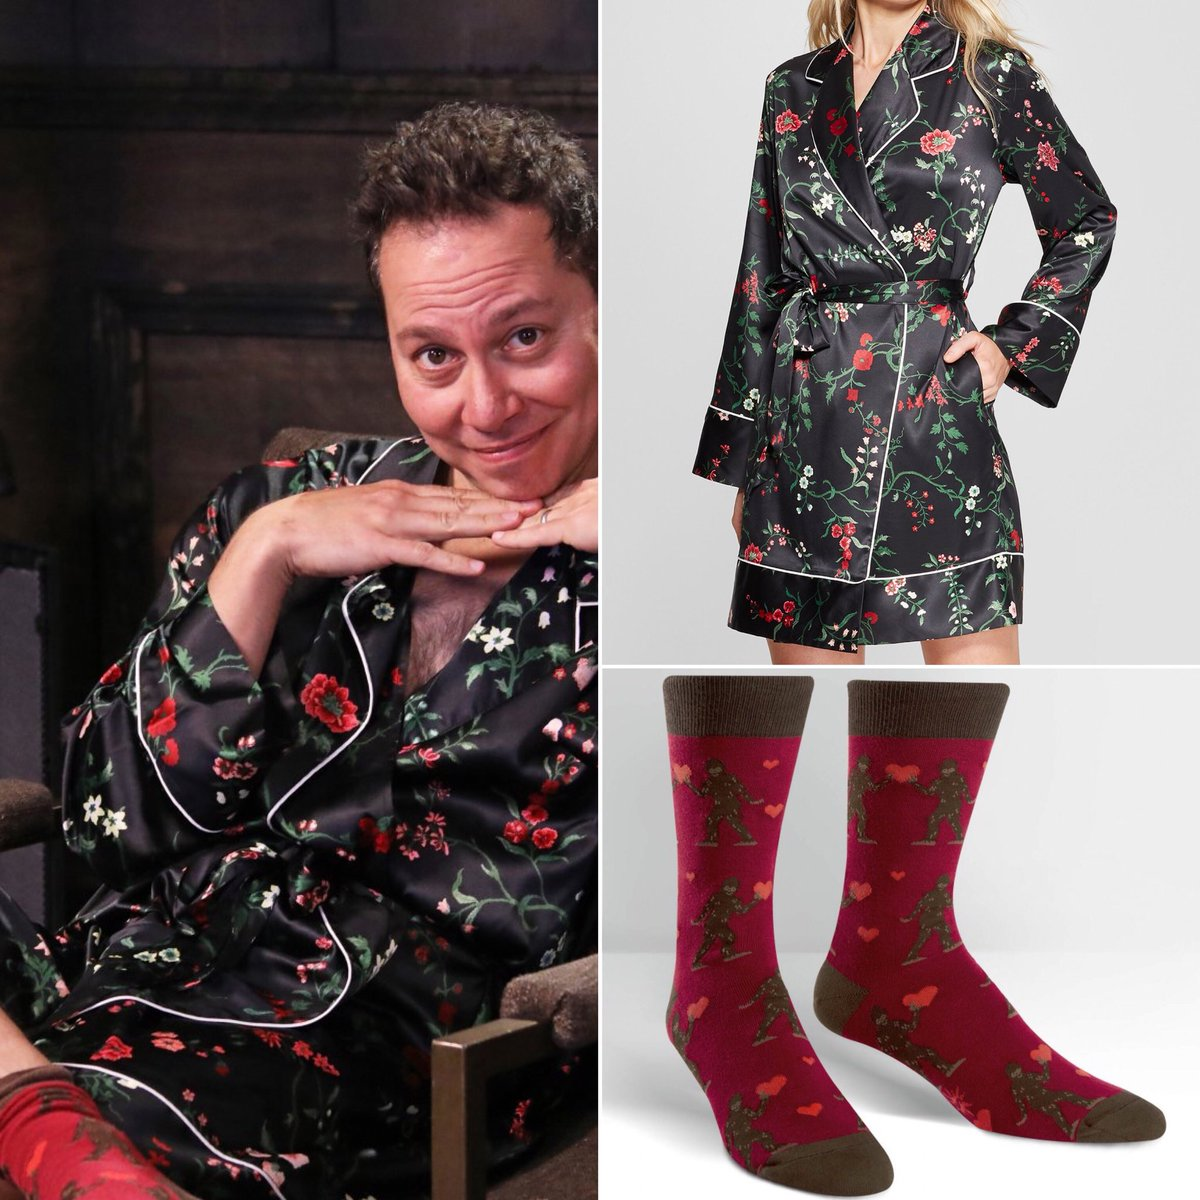 """cc903f364d77 sam wore the """"women s floral print satin robe"""" by gilligan   o malley and  the """"men s sasquatch valentine"""" socks by alicia reese on fireside chat with  sam ..."""